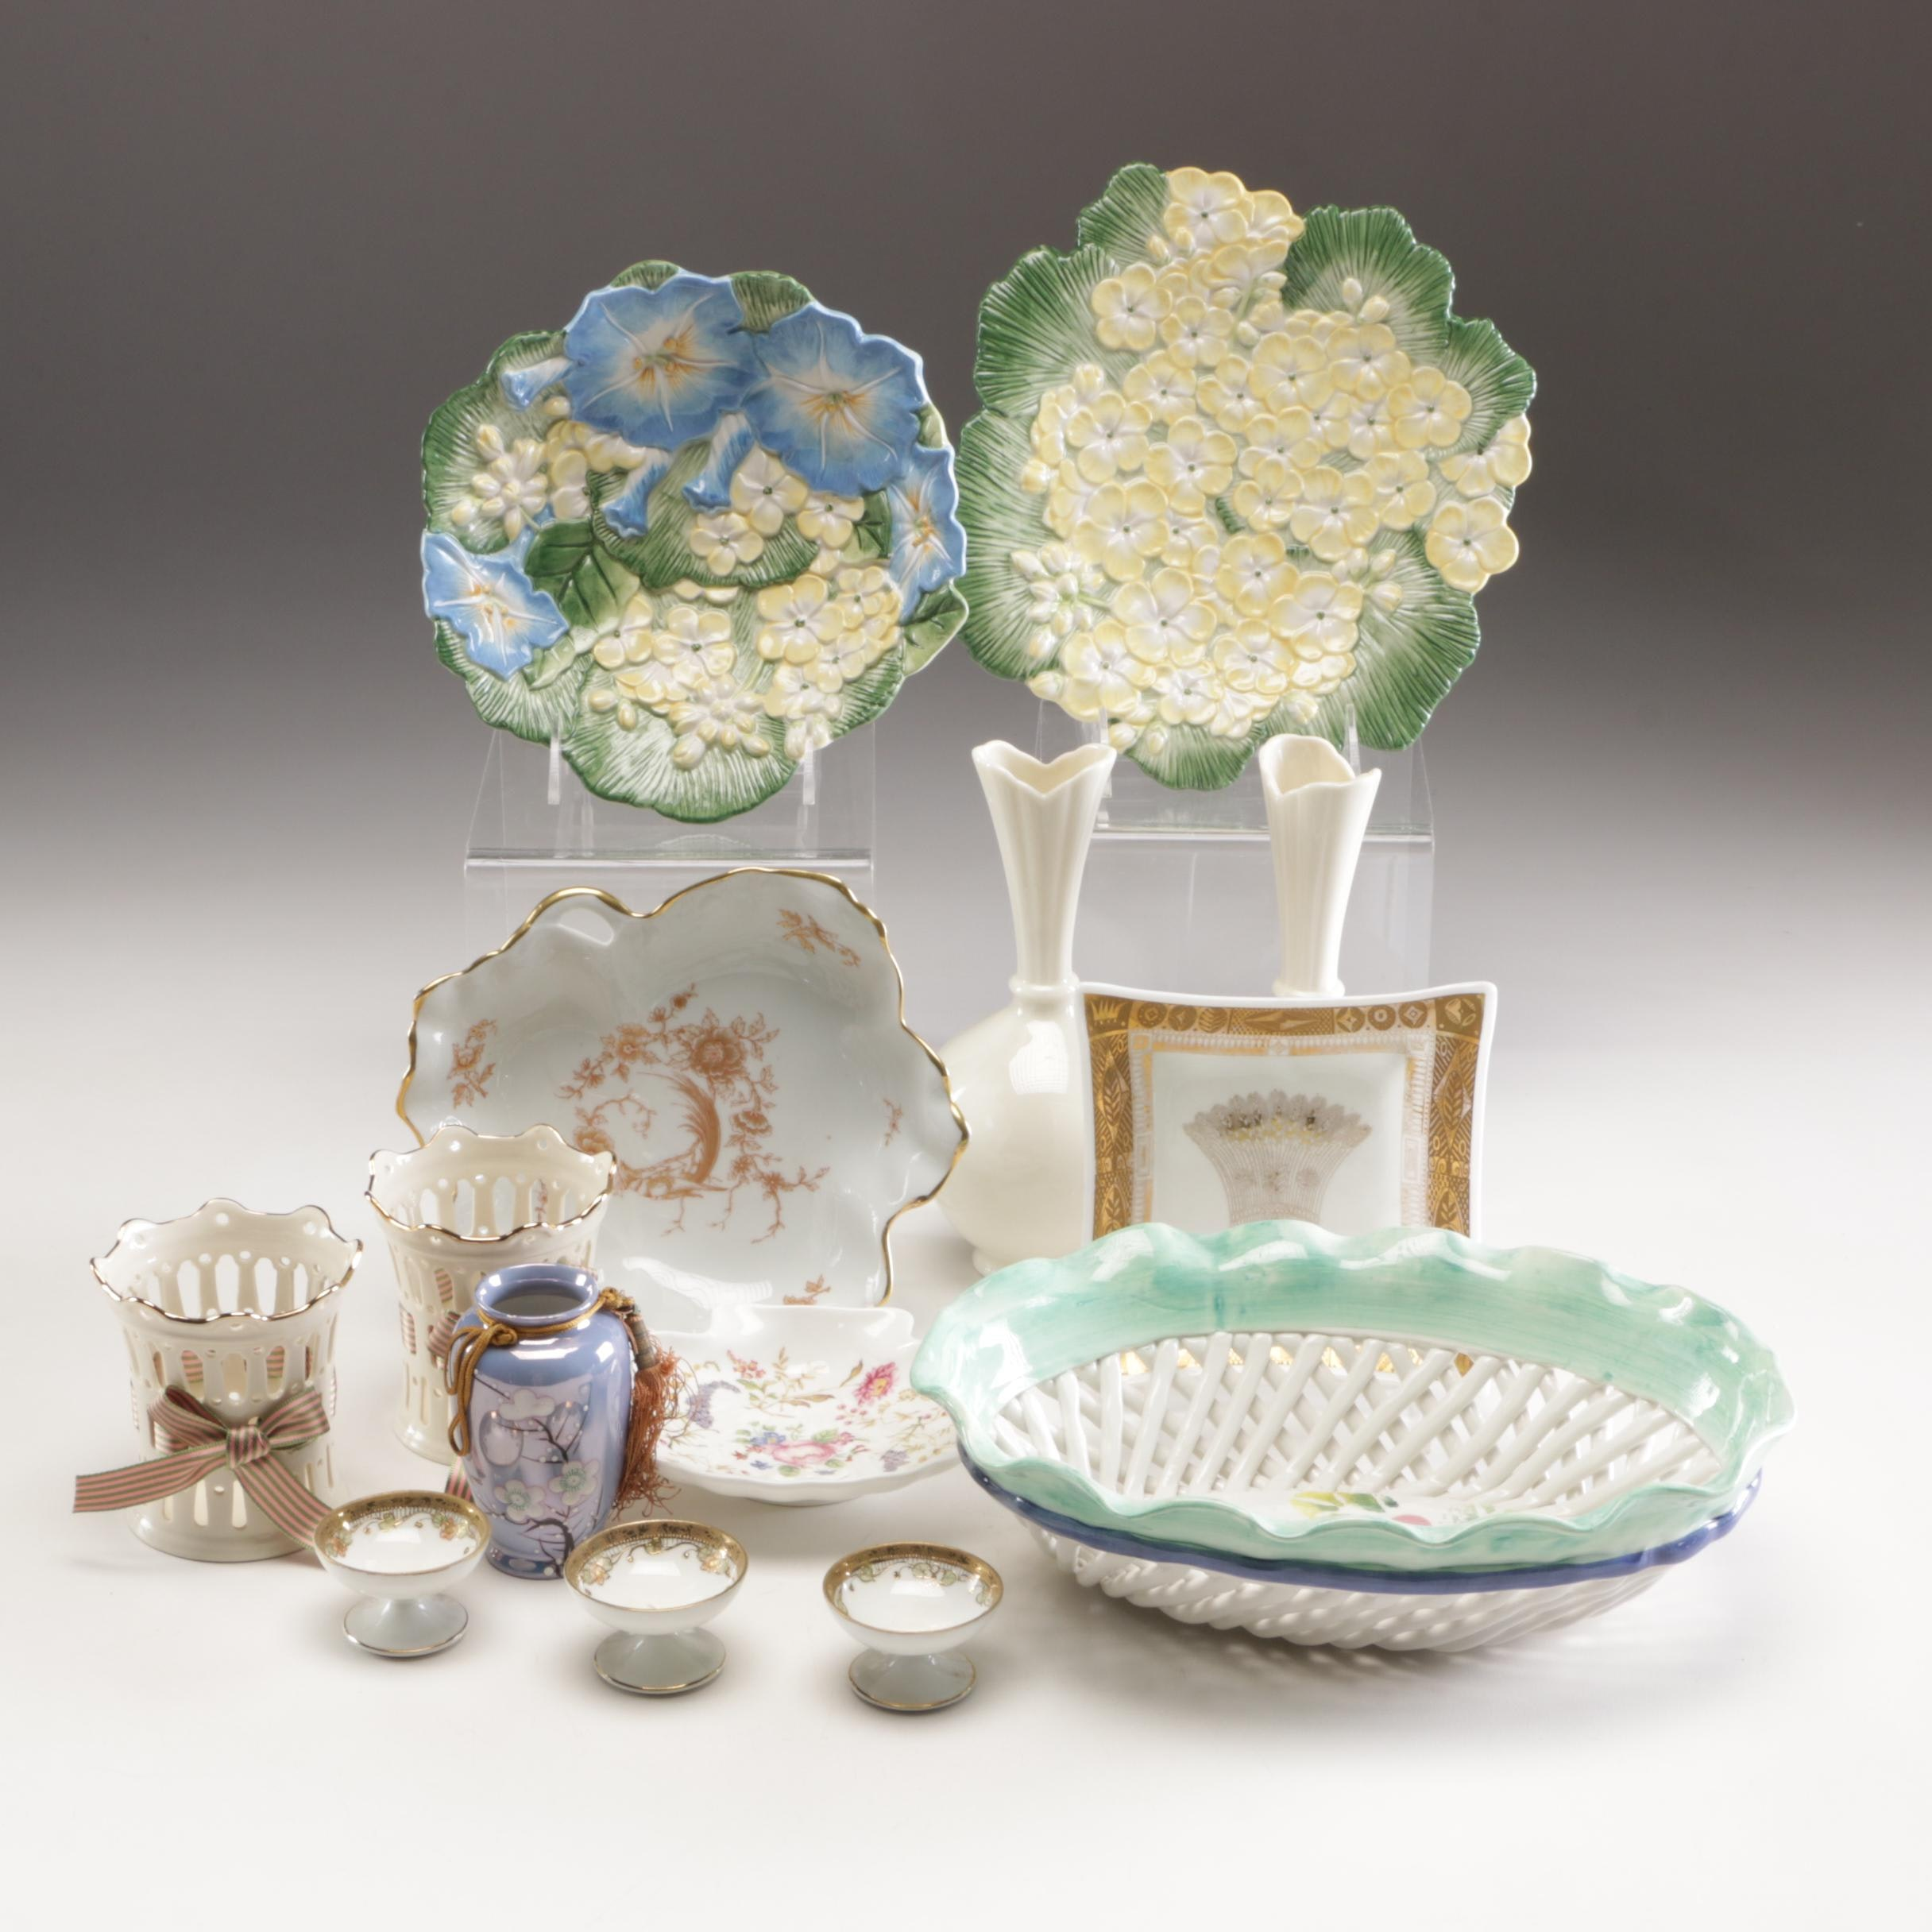 Grouping of Ceramic and Porcelain Tableware Including Lenox